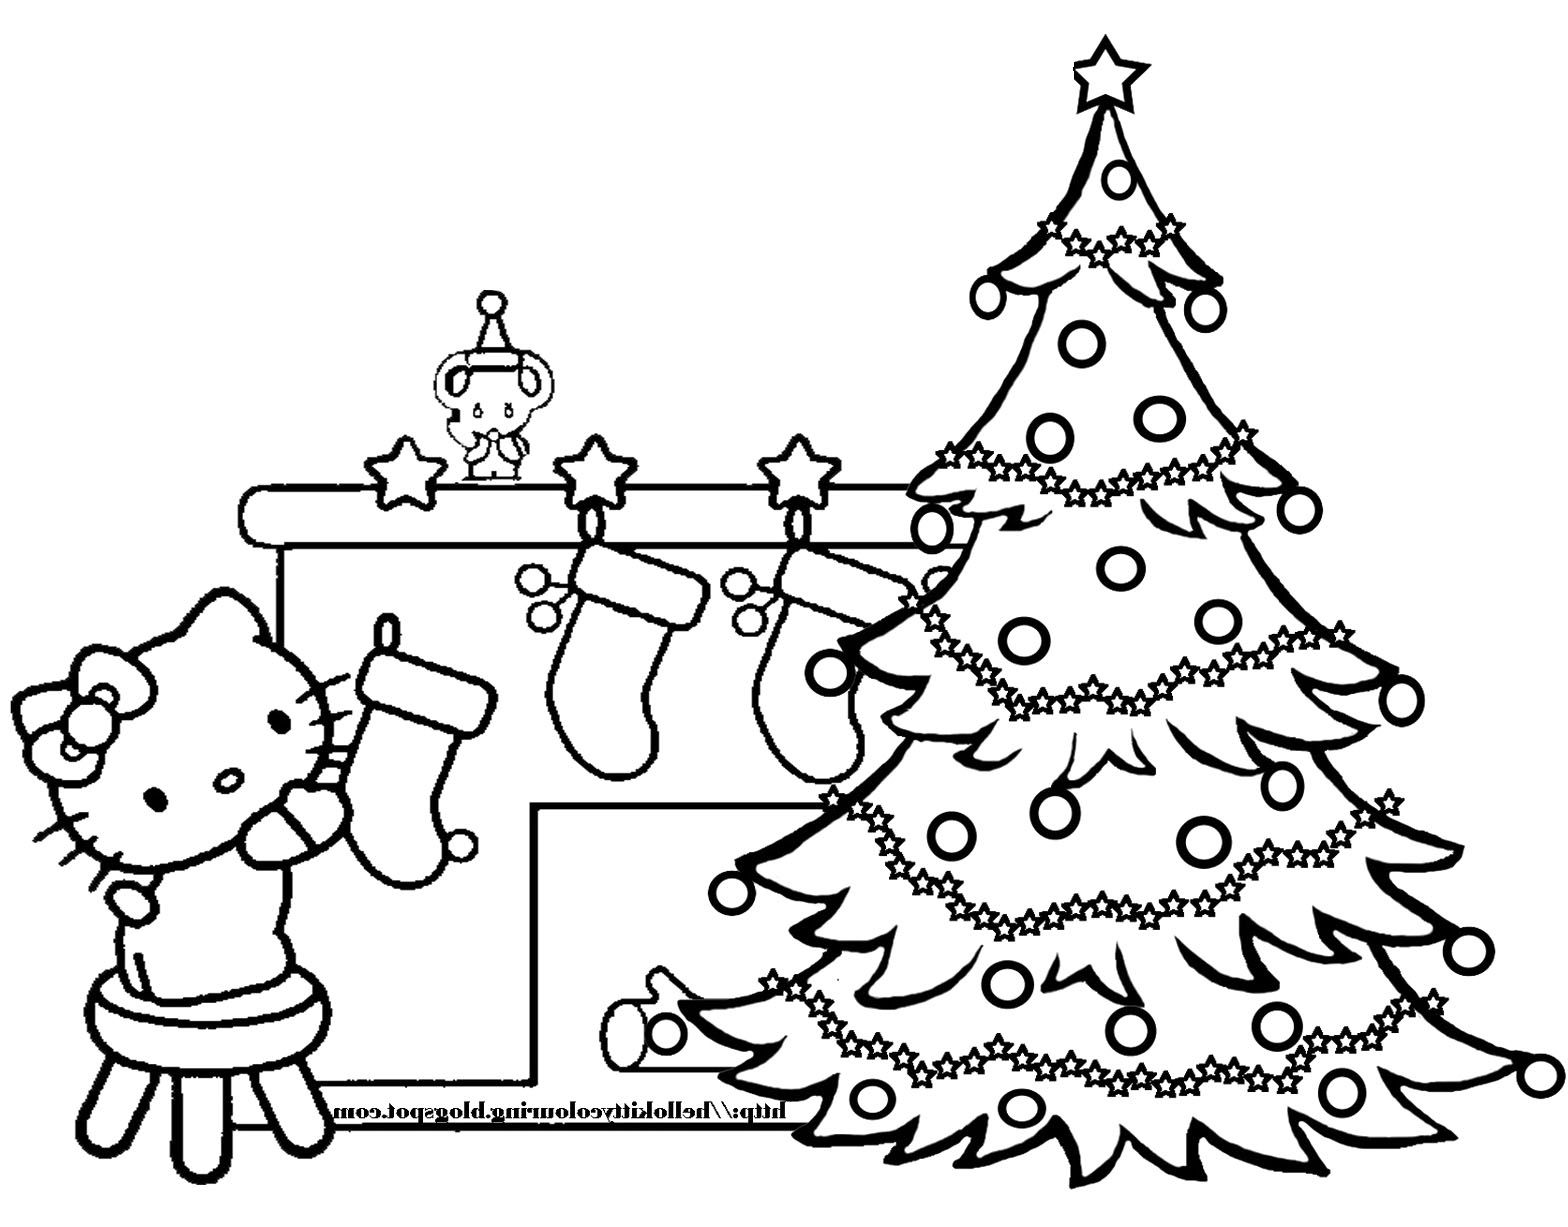 Kitty Cat Christmas Coloring Pages At Getdrawings Free Download